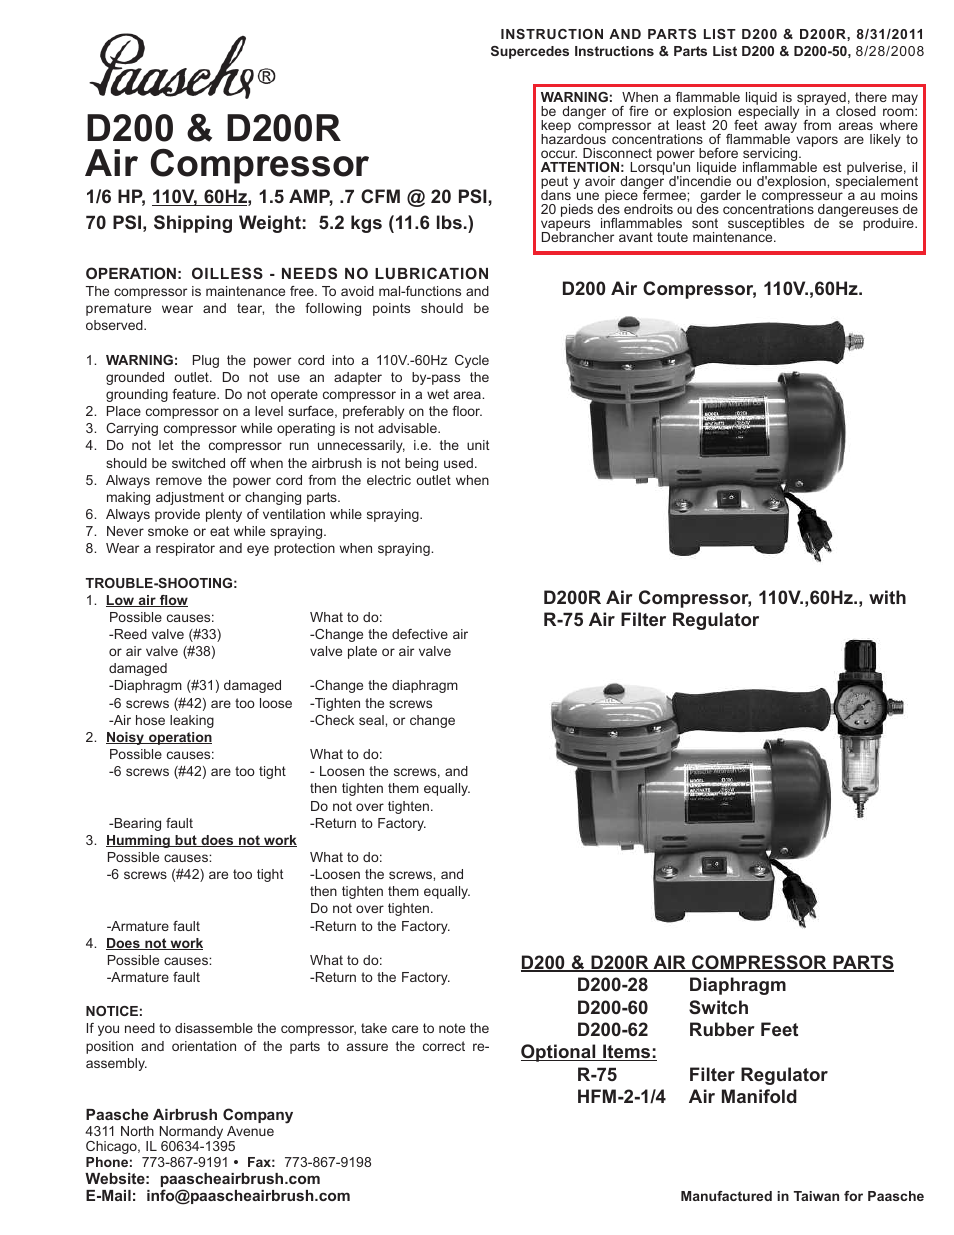 Paasche Airbrush D200R User Manual | 1 page | Also for: D200